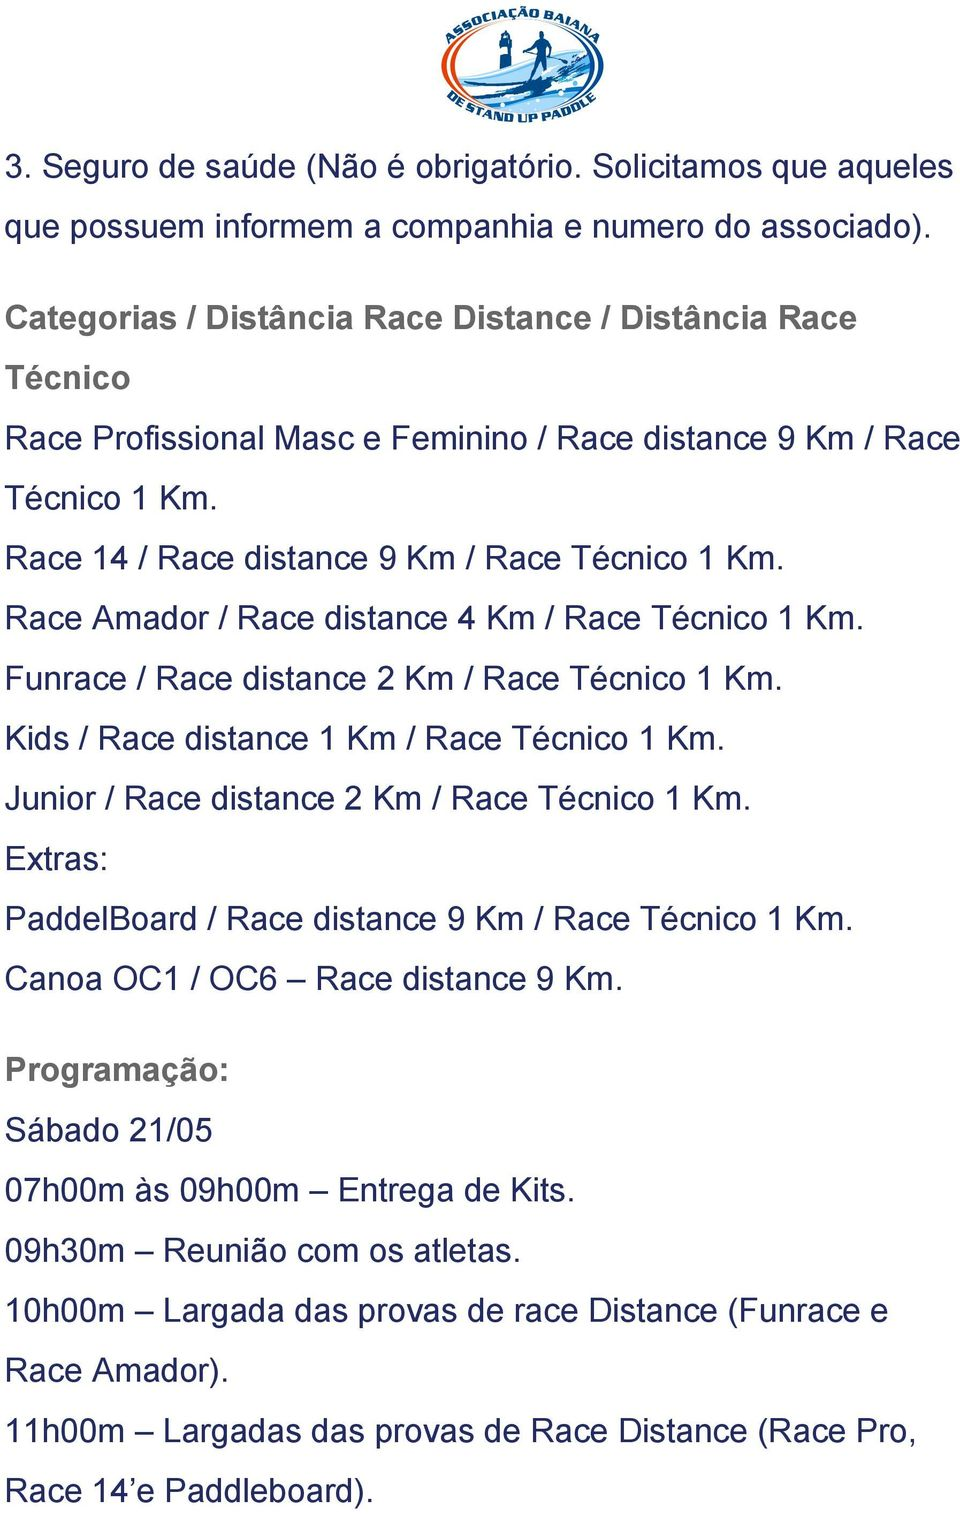 Race Amador / Race distance 4 Km / Race Técnico 1 Km. Funrace / Race distance 2 Km / Race Técnico 1 Km. Kids / Race distance 1 Km / Race Técnico 1 Km. Junior / Race distance 2 Km / Race Técnico 1 Km.